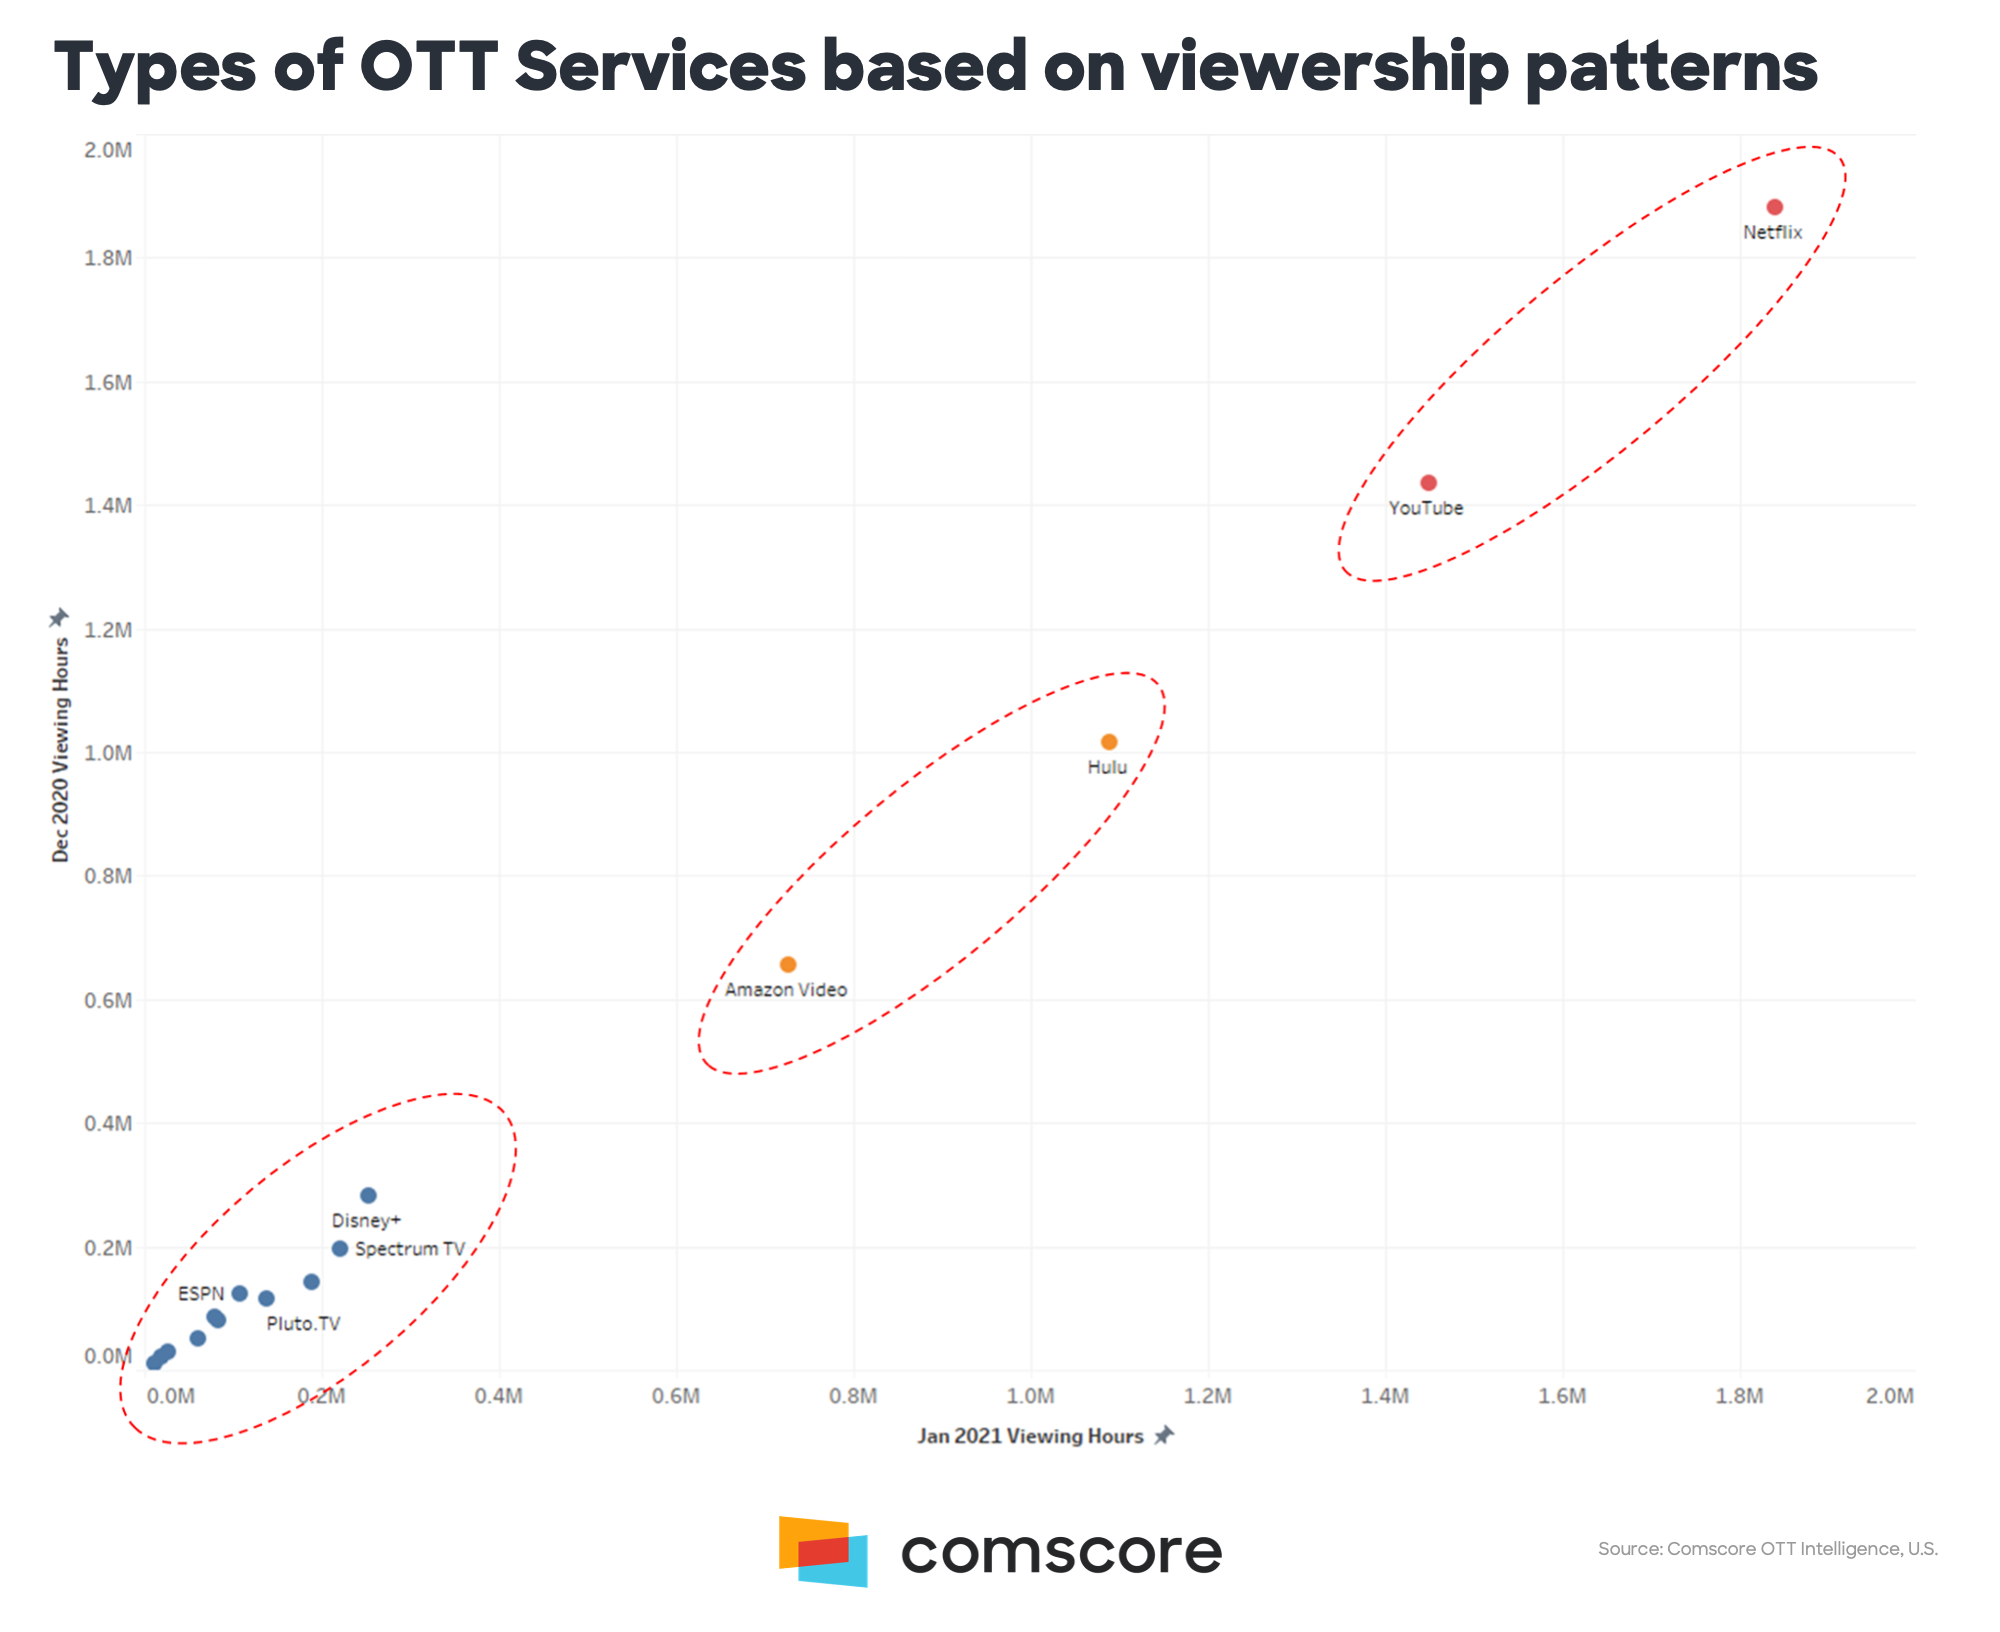 Types of OTT Services Based on Viewership Patterns